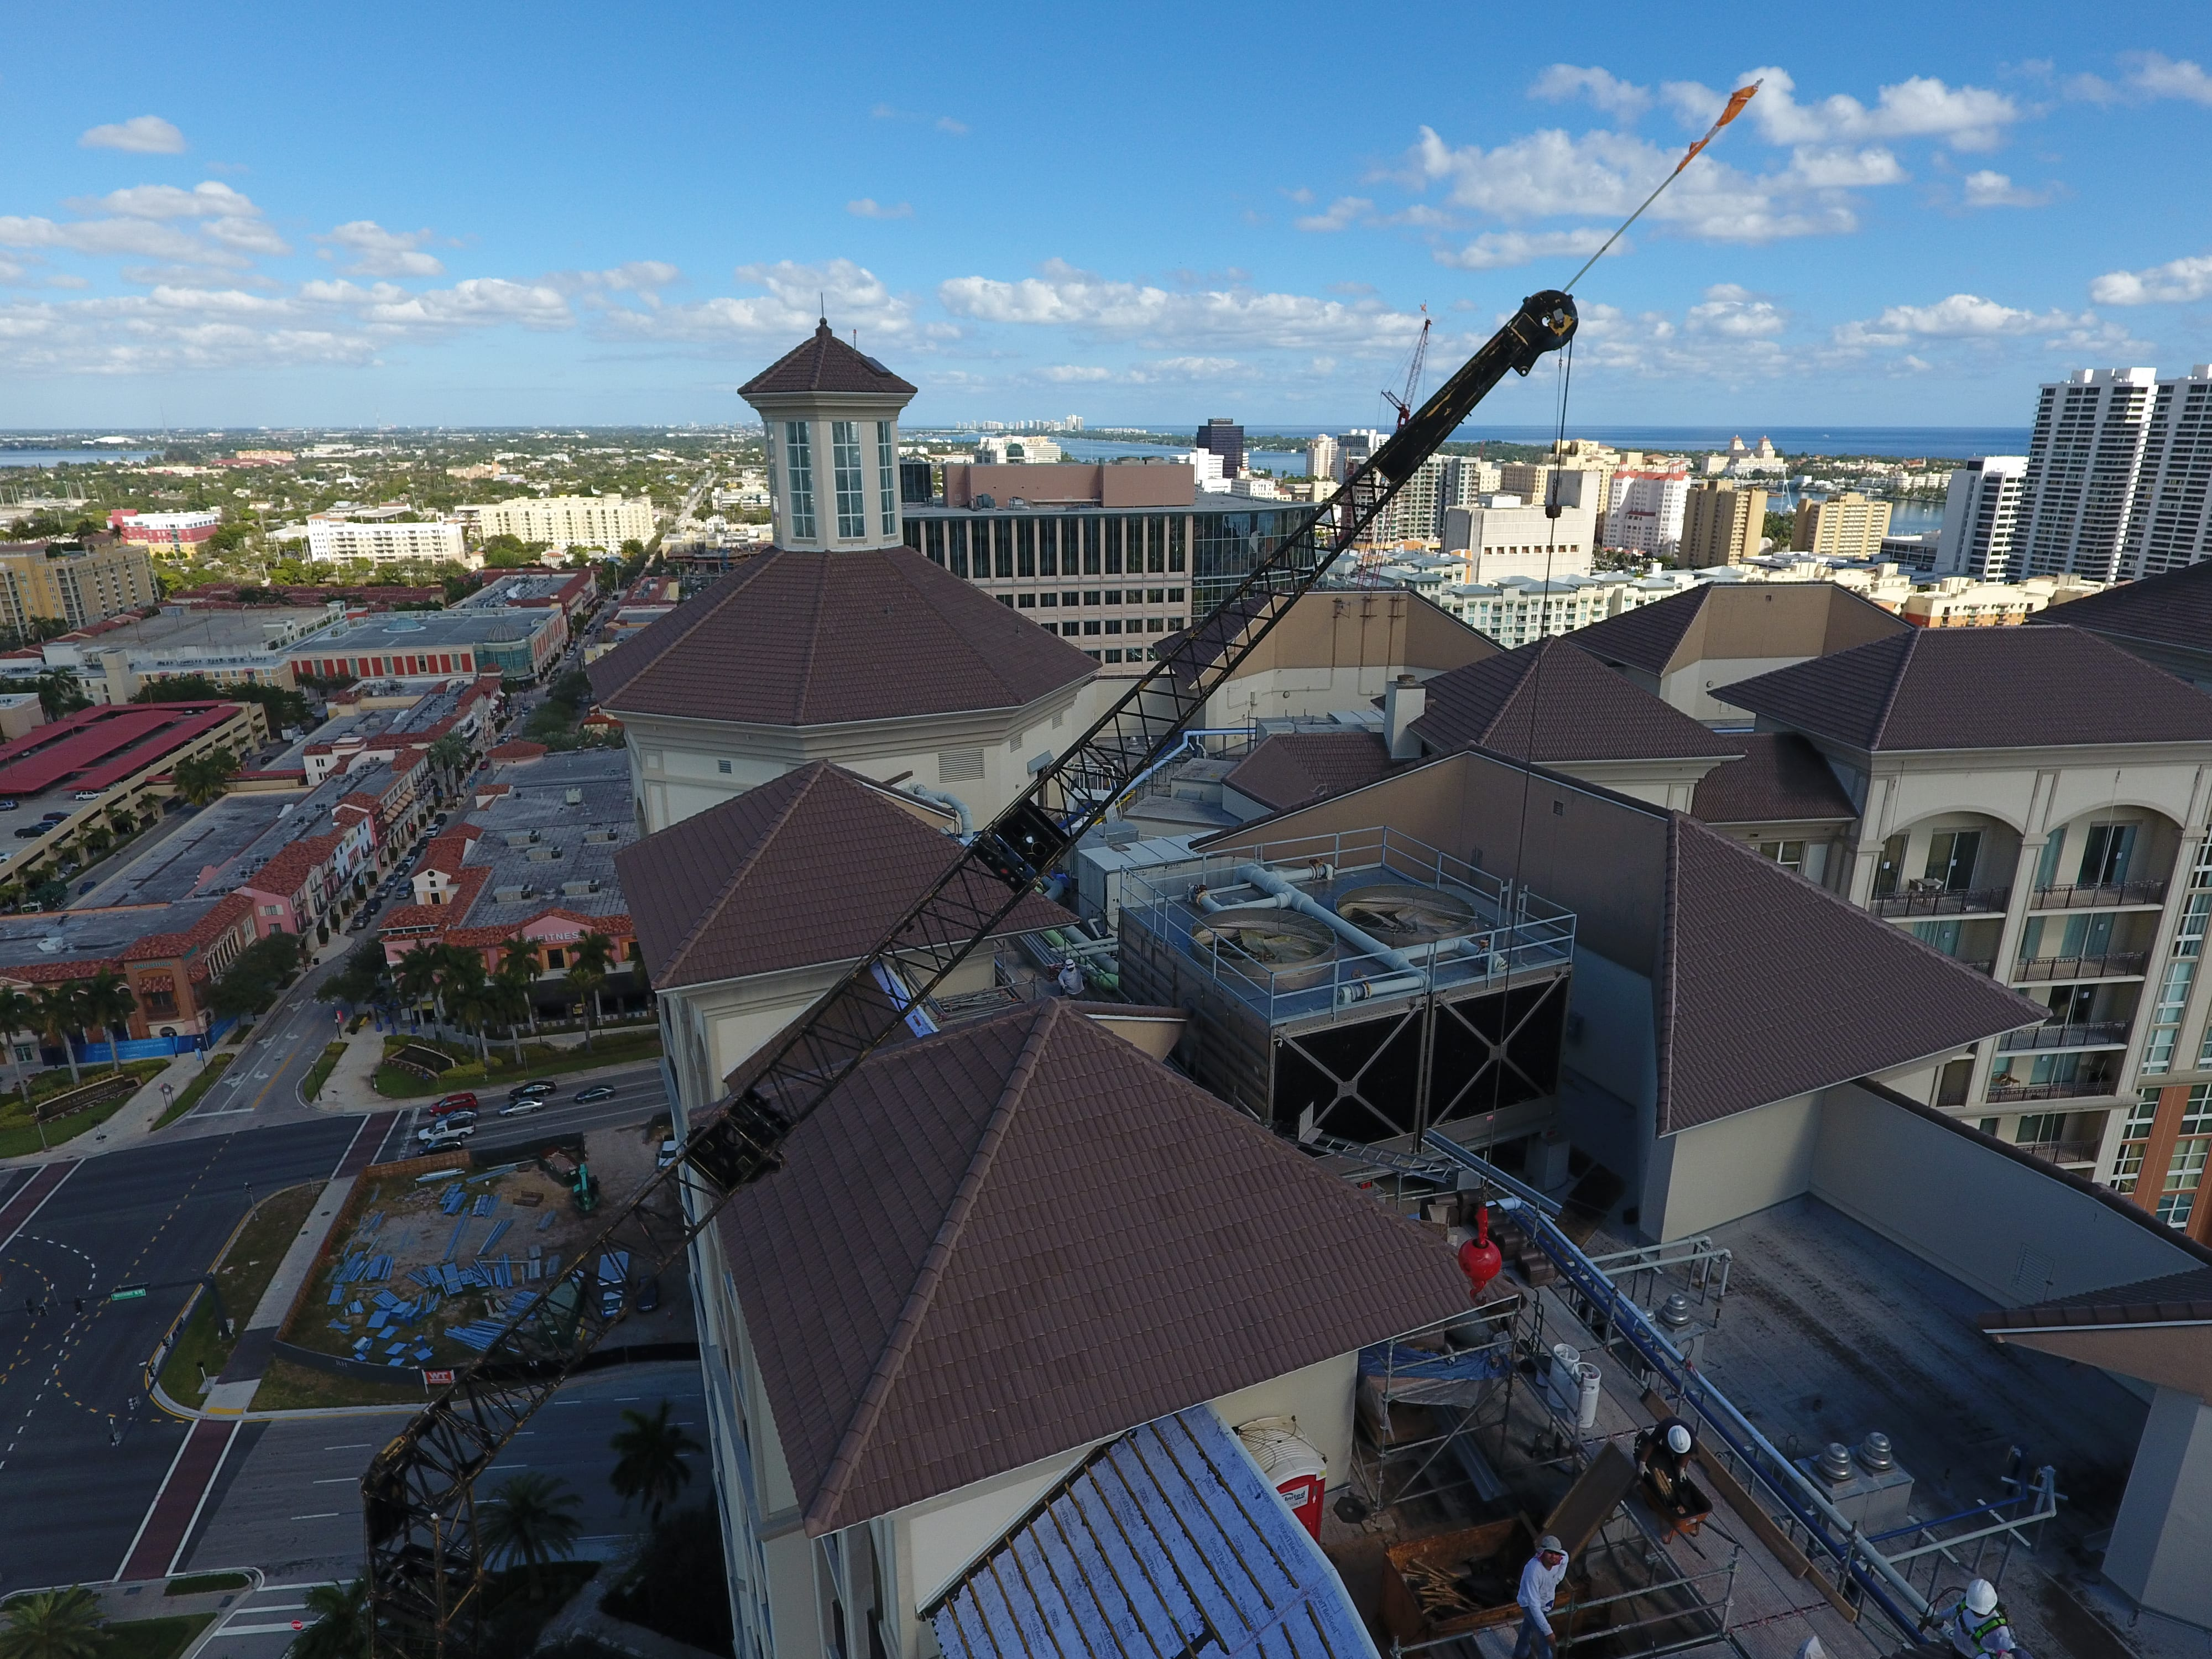 Hi-Rise Commercial Roofing, Inc. image 6